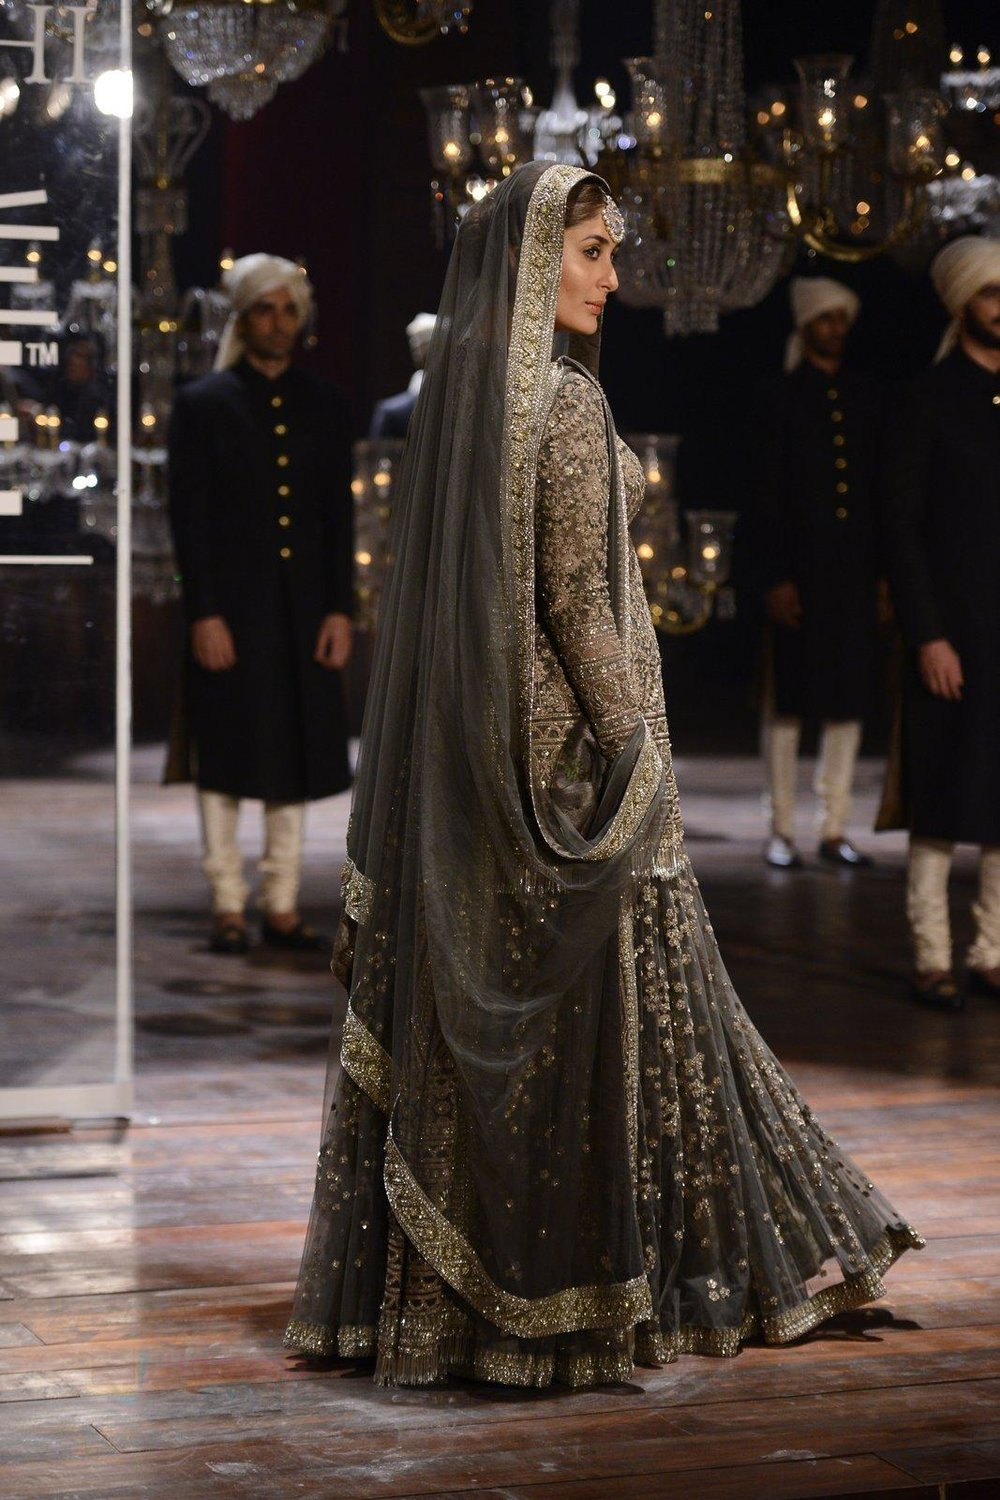 Kareena Kapoor walk the ramp for Sabyasachi Show Grand Finale at Lakme Fashion Week 2016 on 28th Aug 2016 shown to user 34724